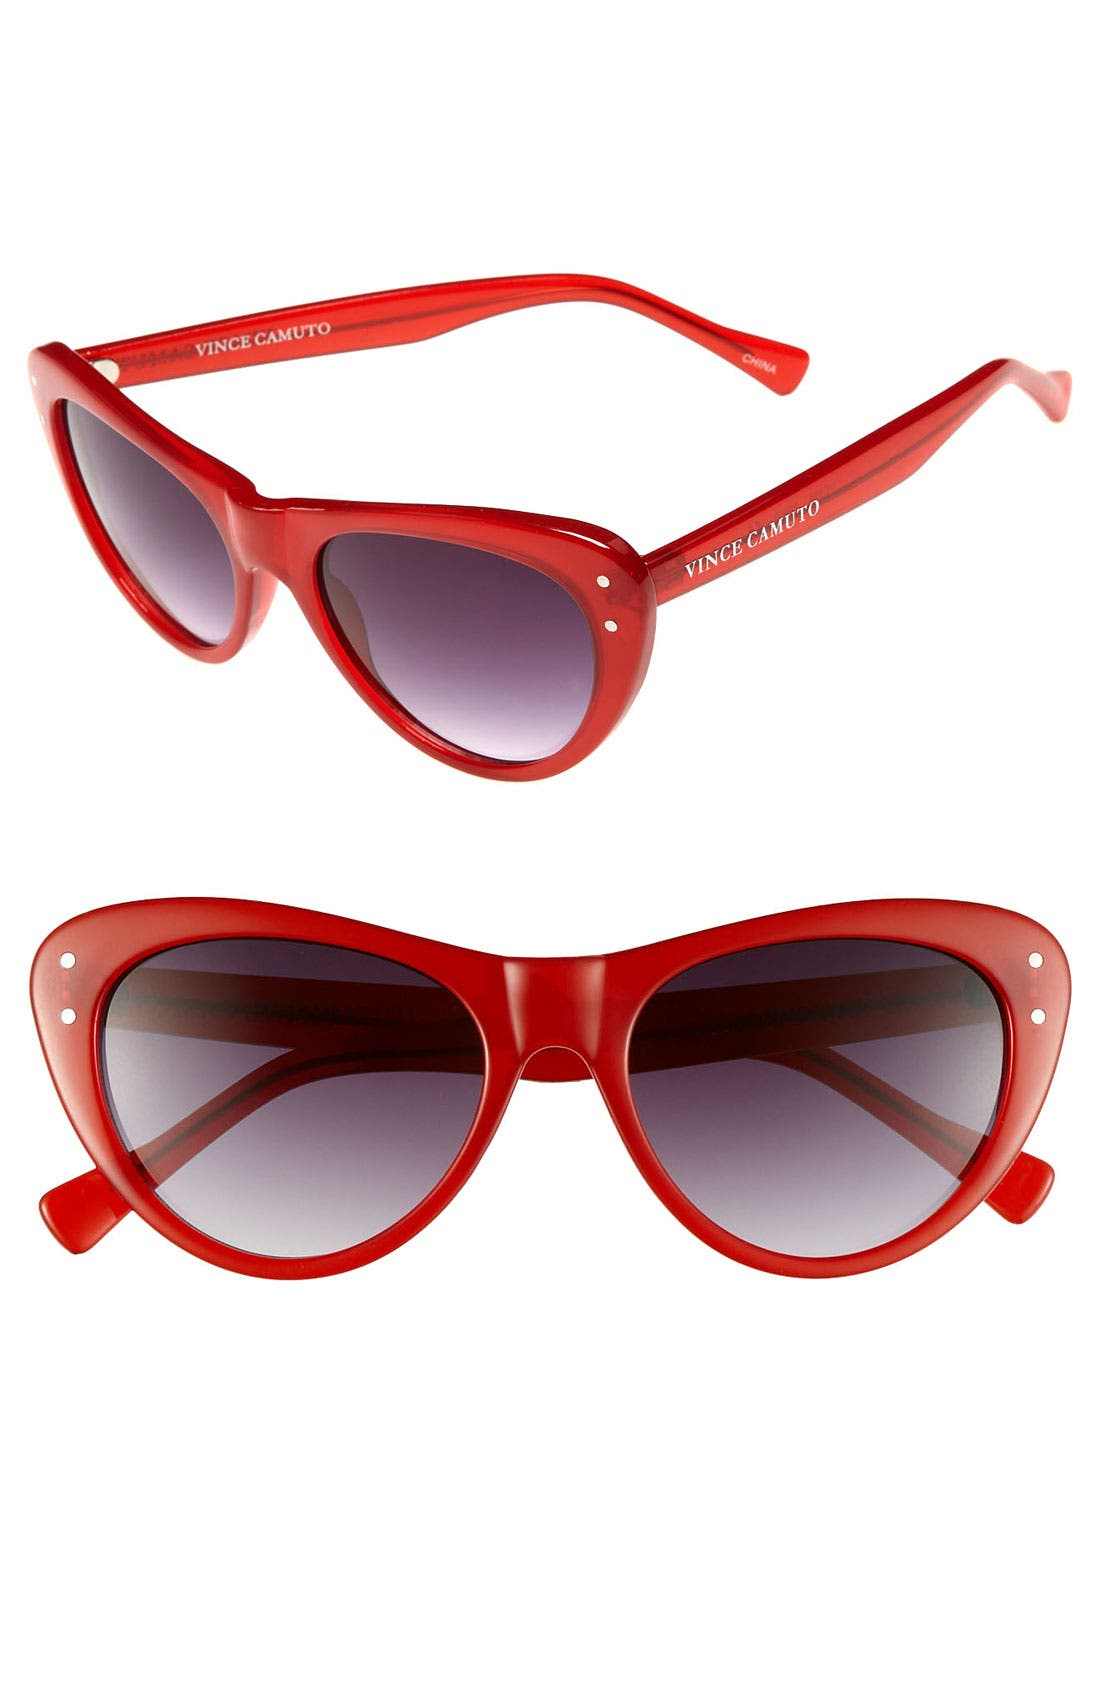 Main Image - Vince Camuto Retro Sunglasses